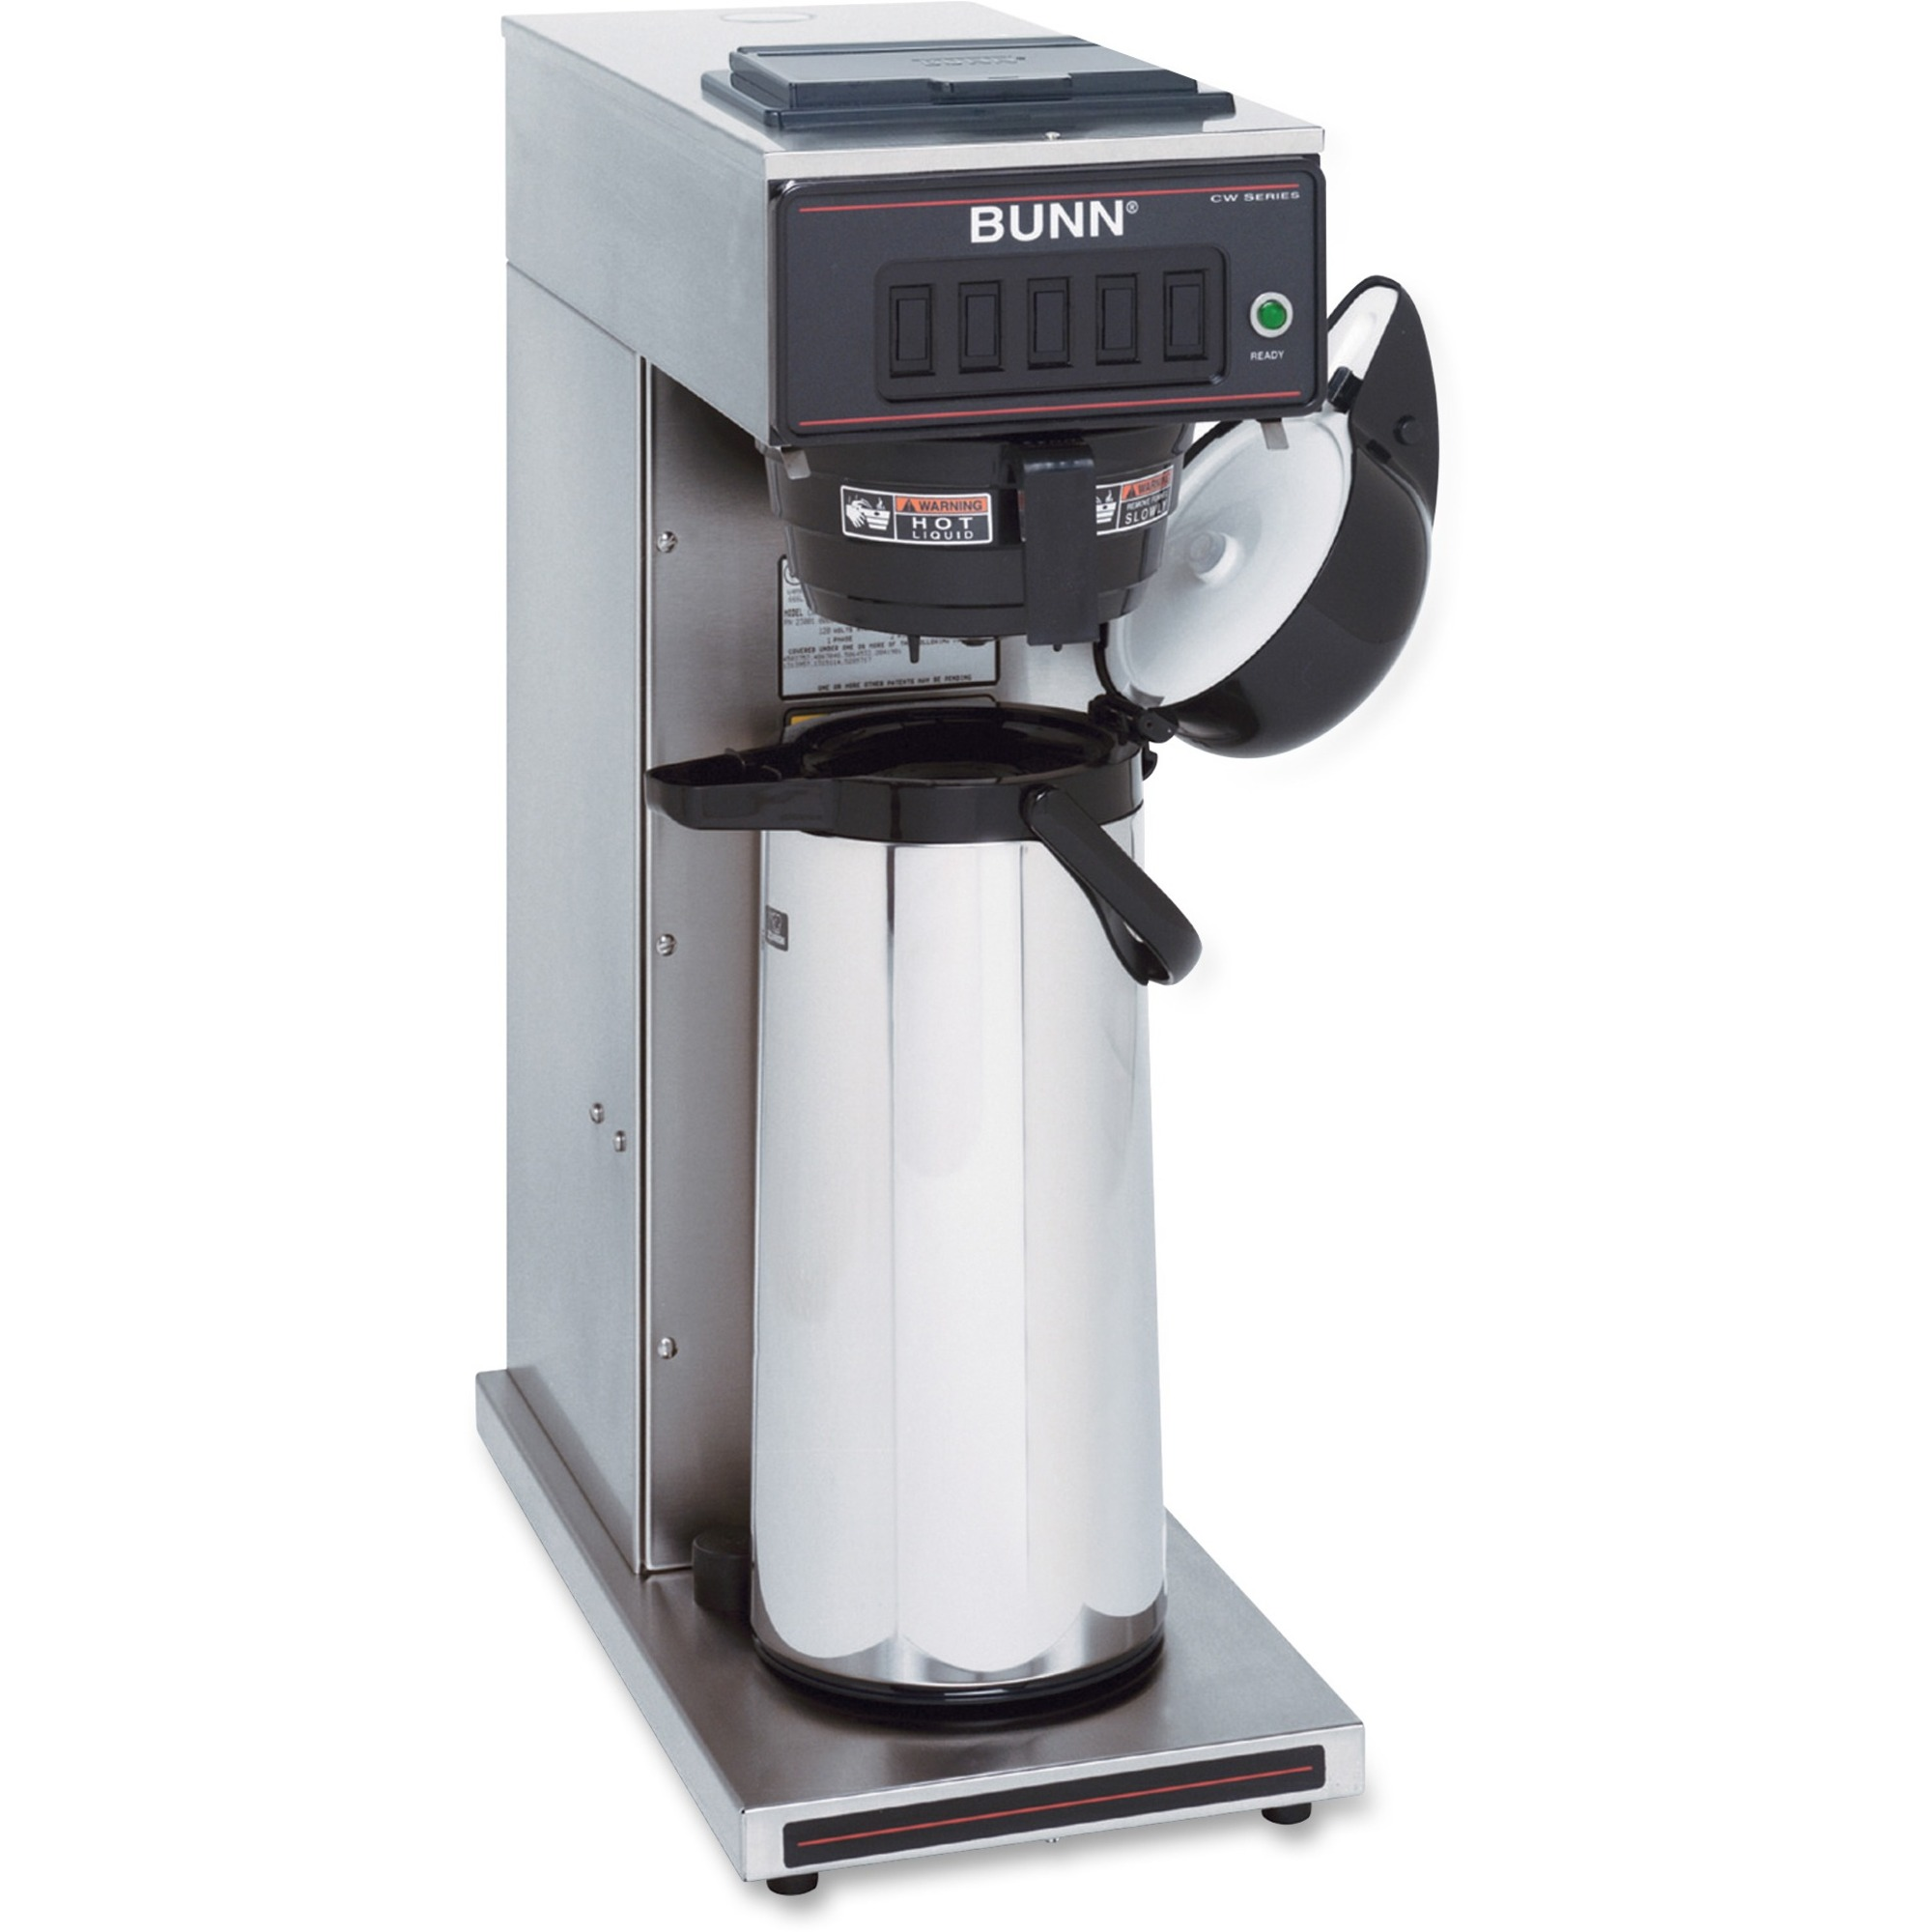 Bunn Coffee Maker Power Consumption : Product BUN230016001 BUNN Airpot Coffee Brewer